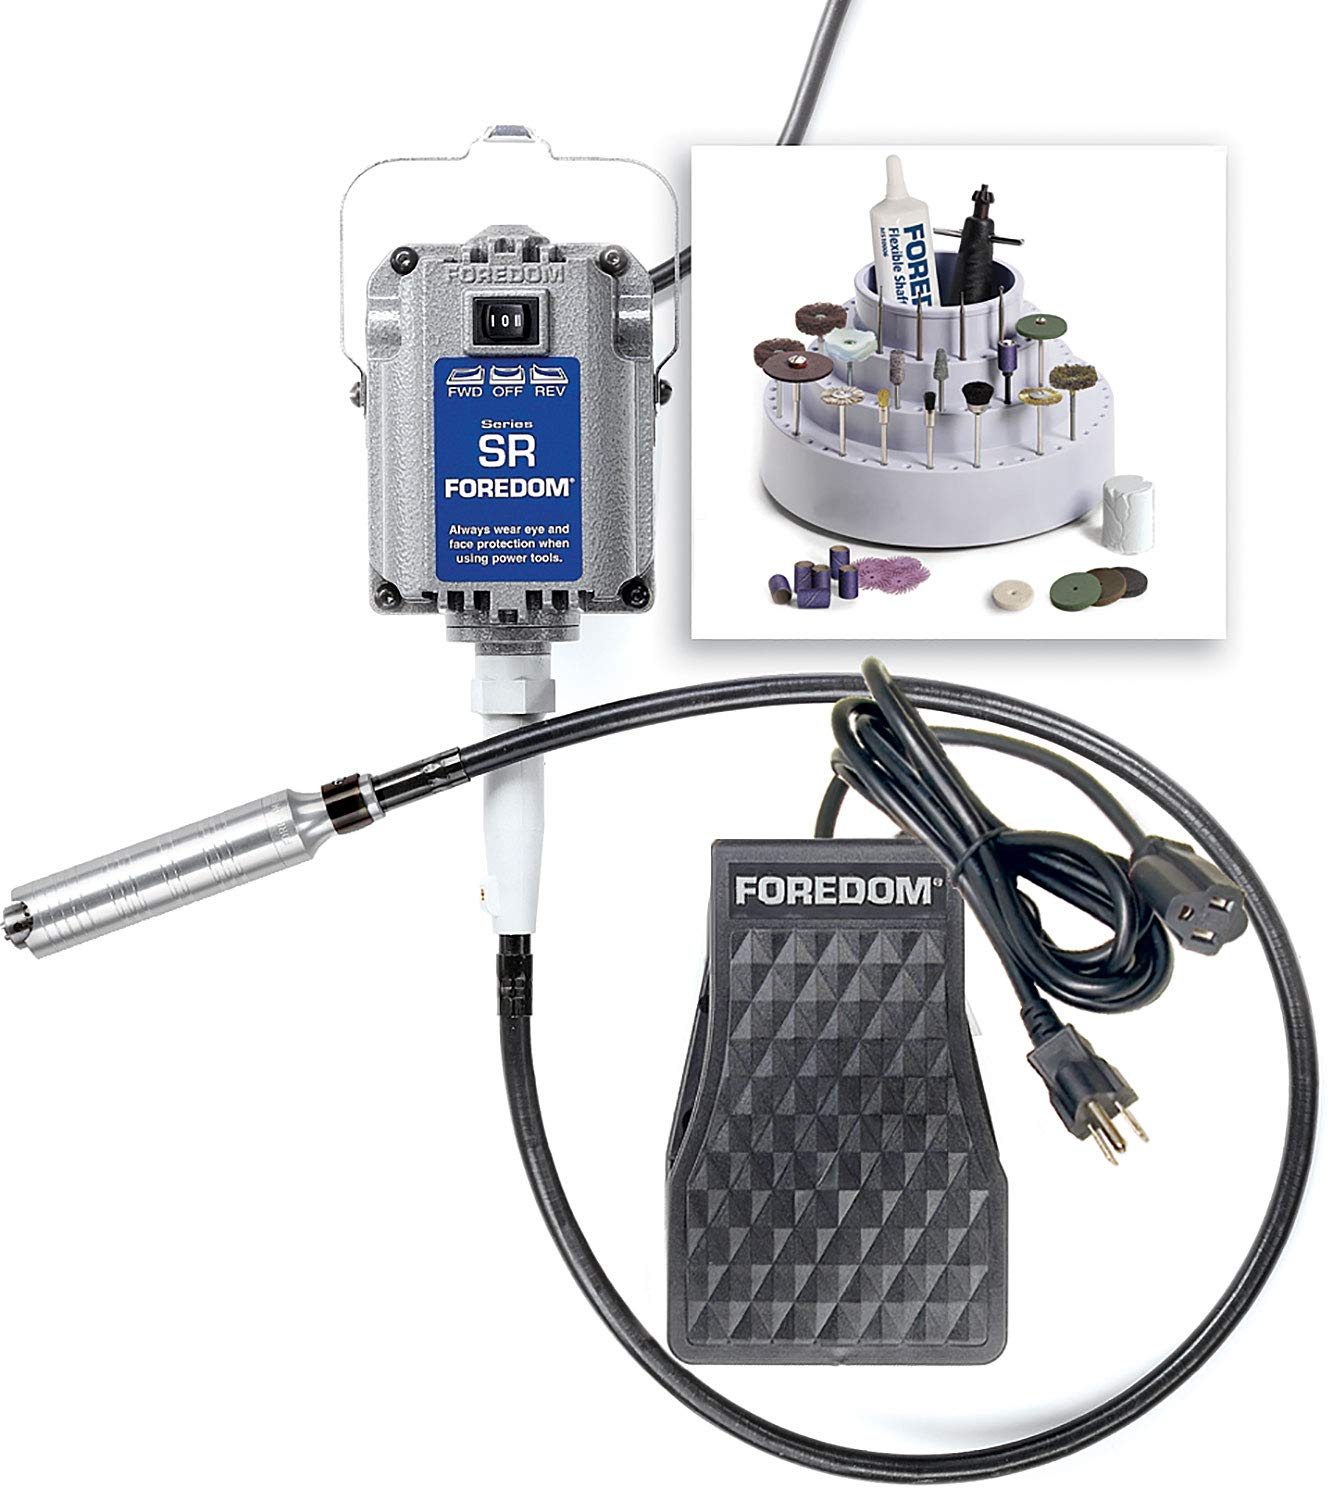 Foredom 2230, SR motor, Jewelers Kit by Foredom